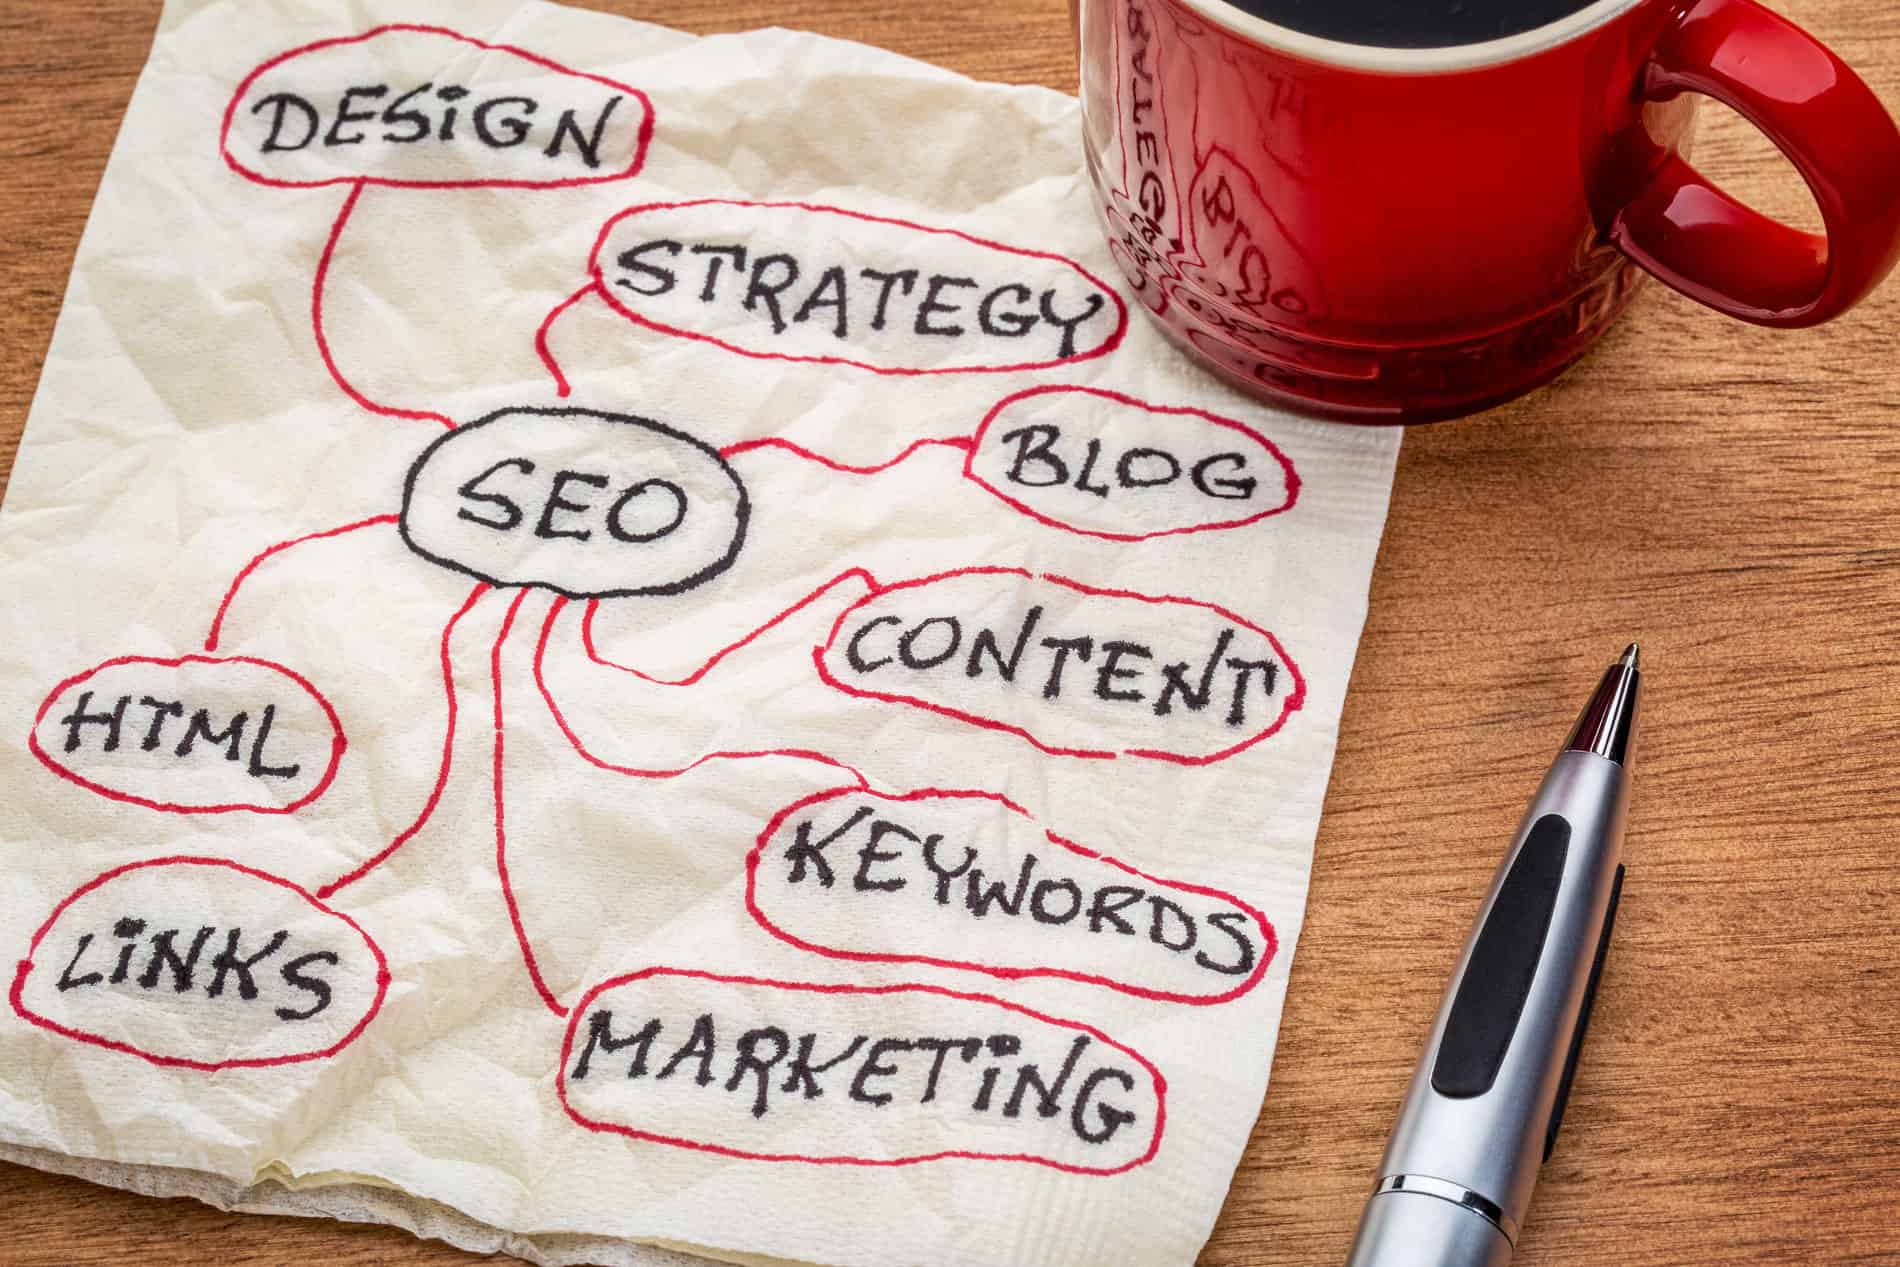 The Voodoo We Call SEO That We Want to Do So Well